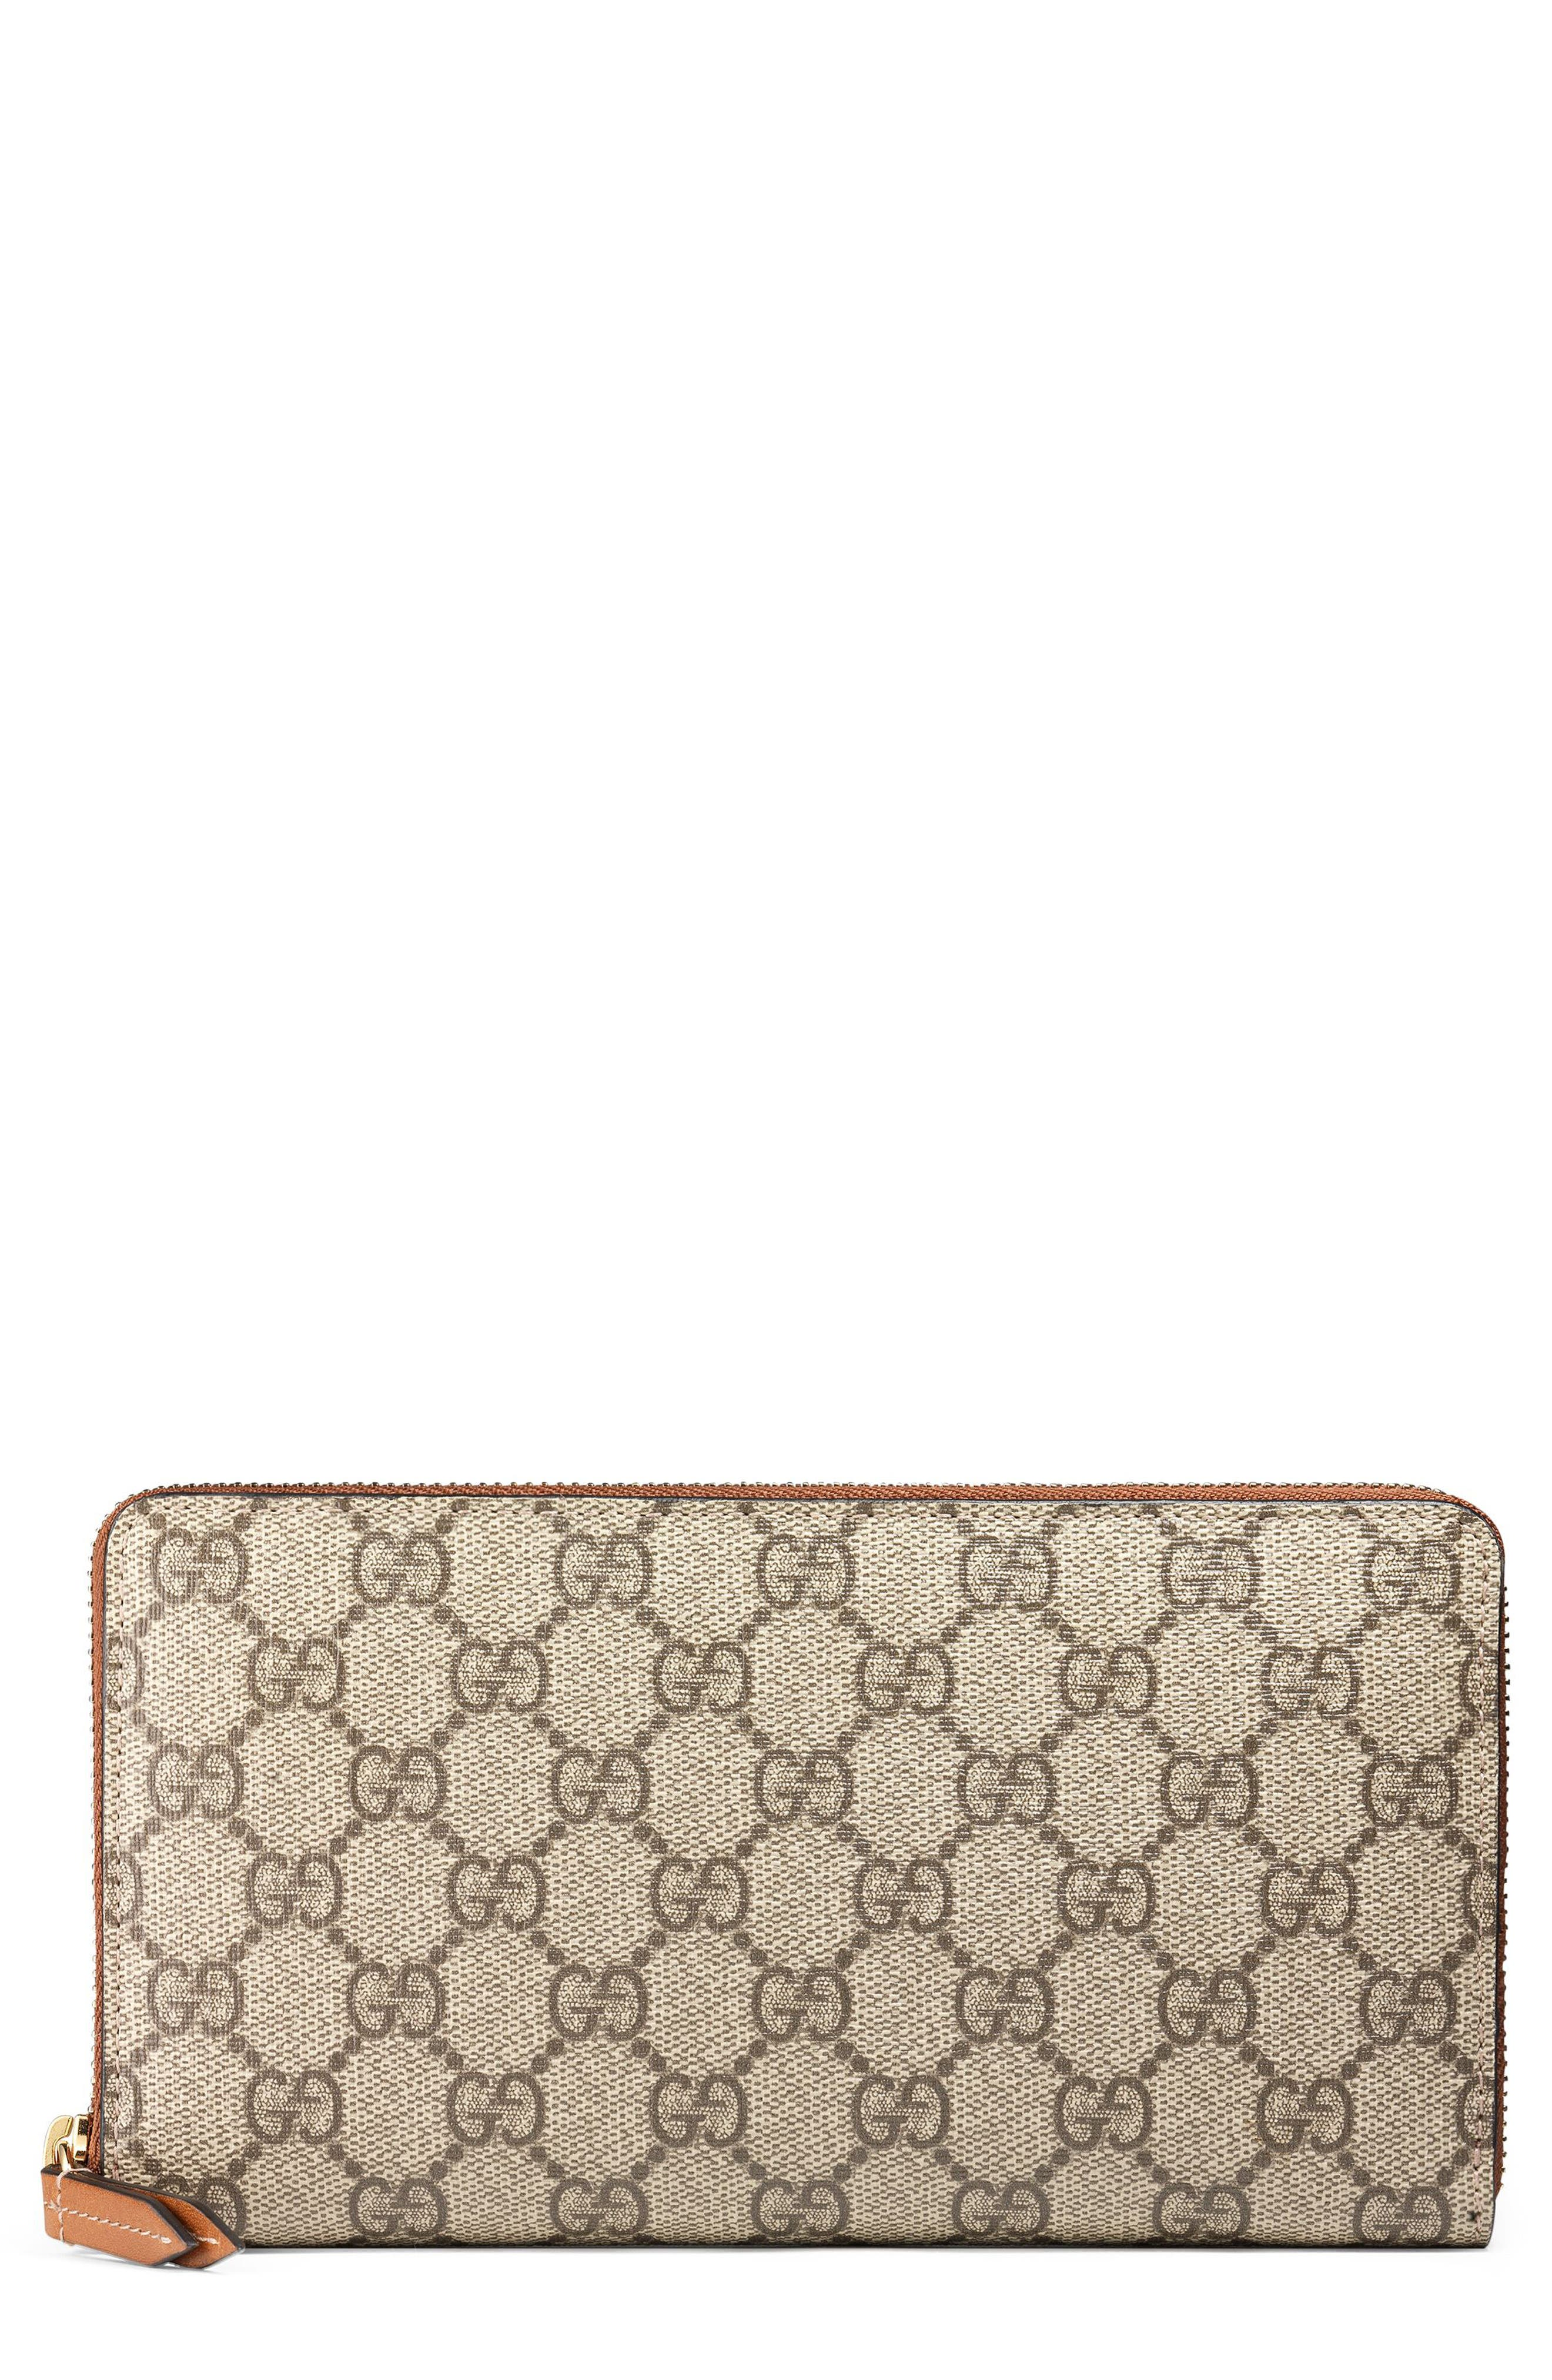 Linea GG Supreme Canvas Zip Around Wallet,                         Main,                         color, BEIGE EBONY/ CUIR